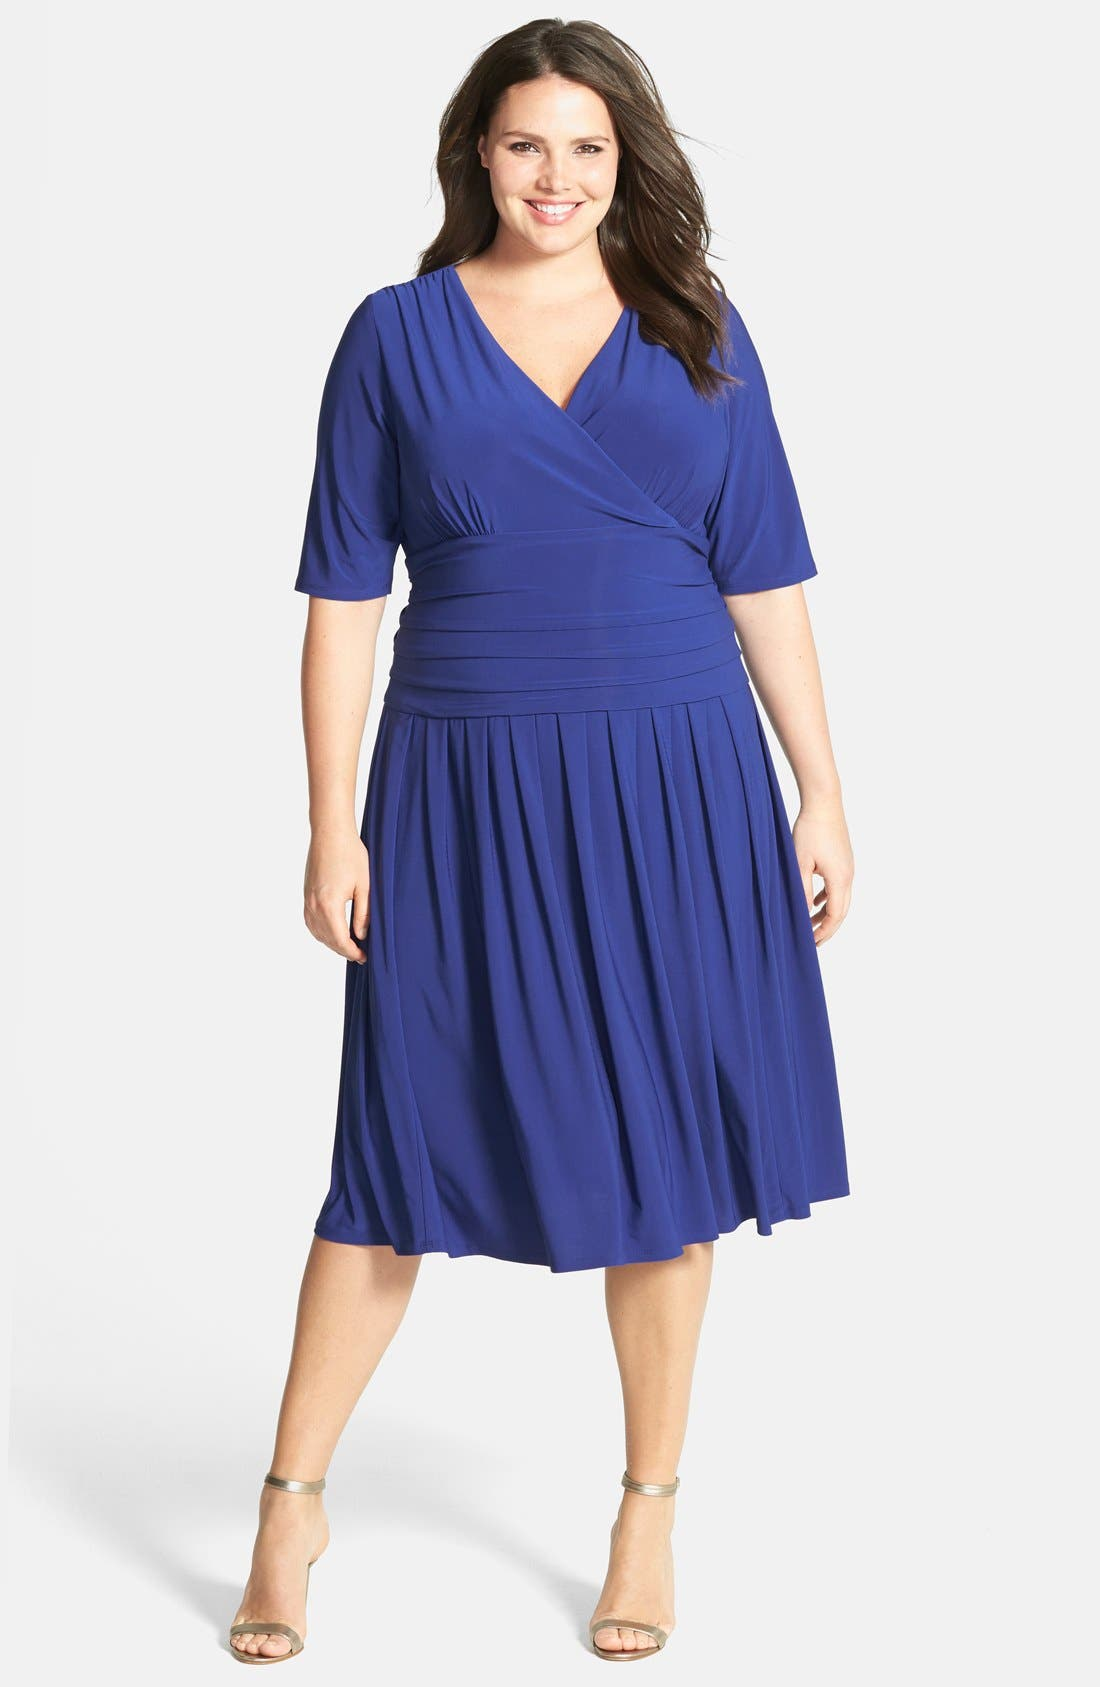 Alternate Image 1 Selected - Eliza J Ruched Stretch Knit Dress (Plus Size) (Online Only)